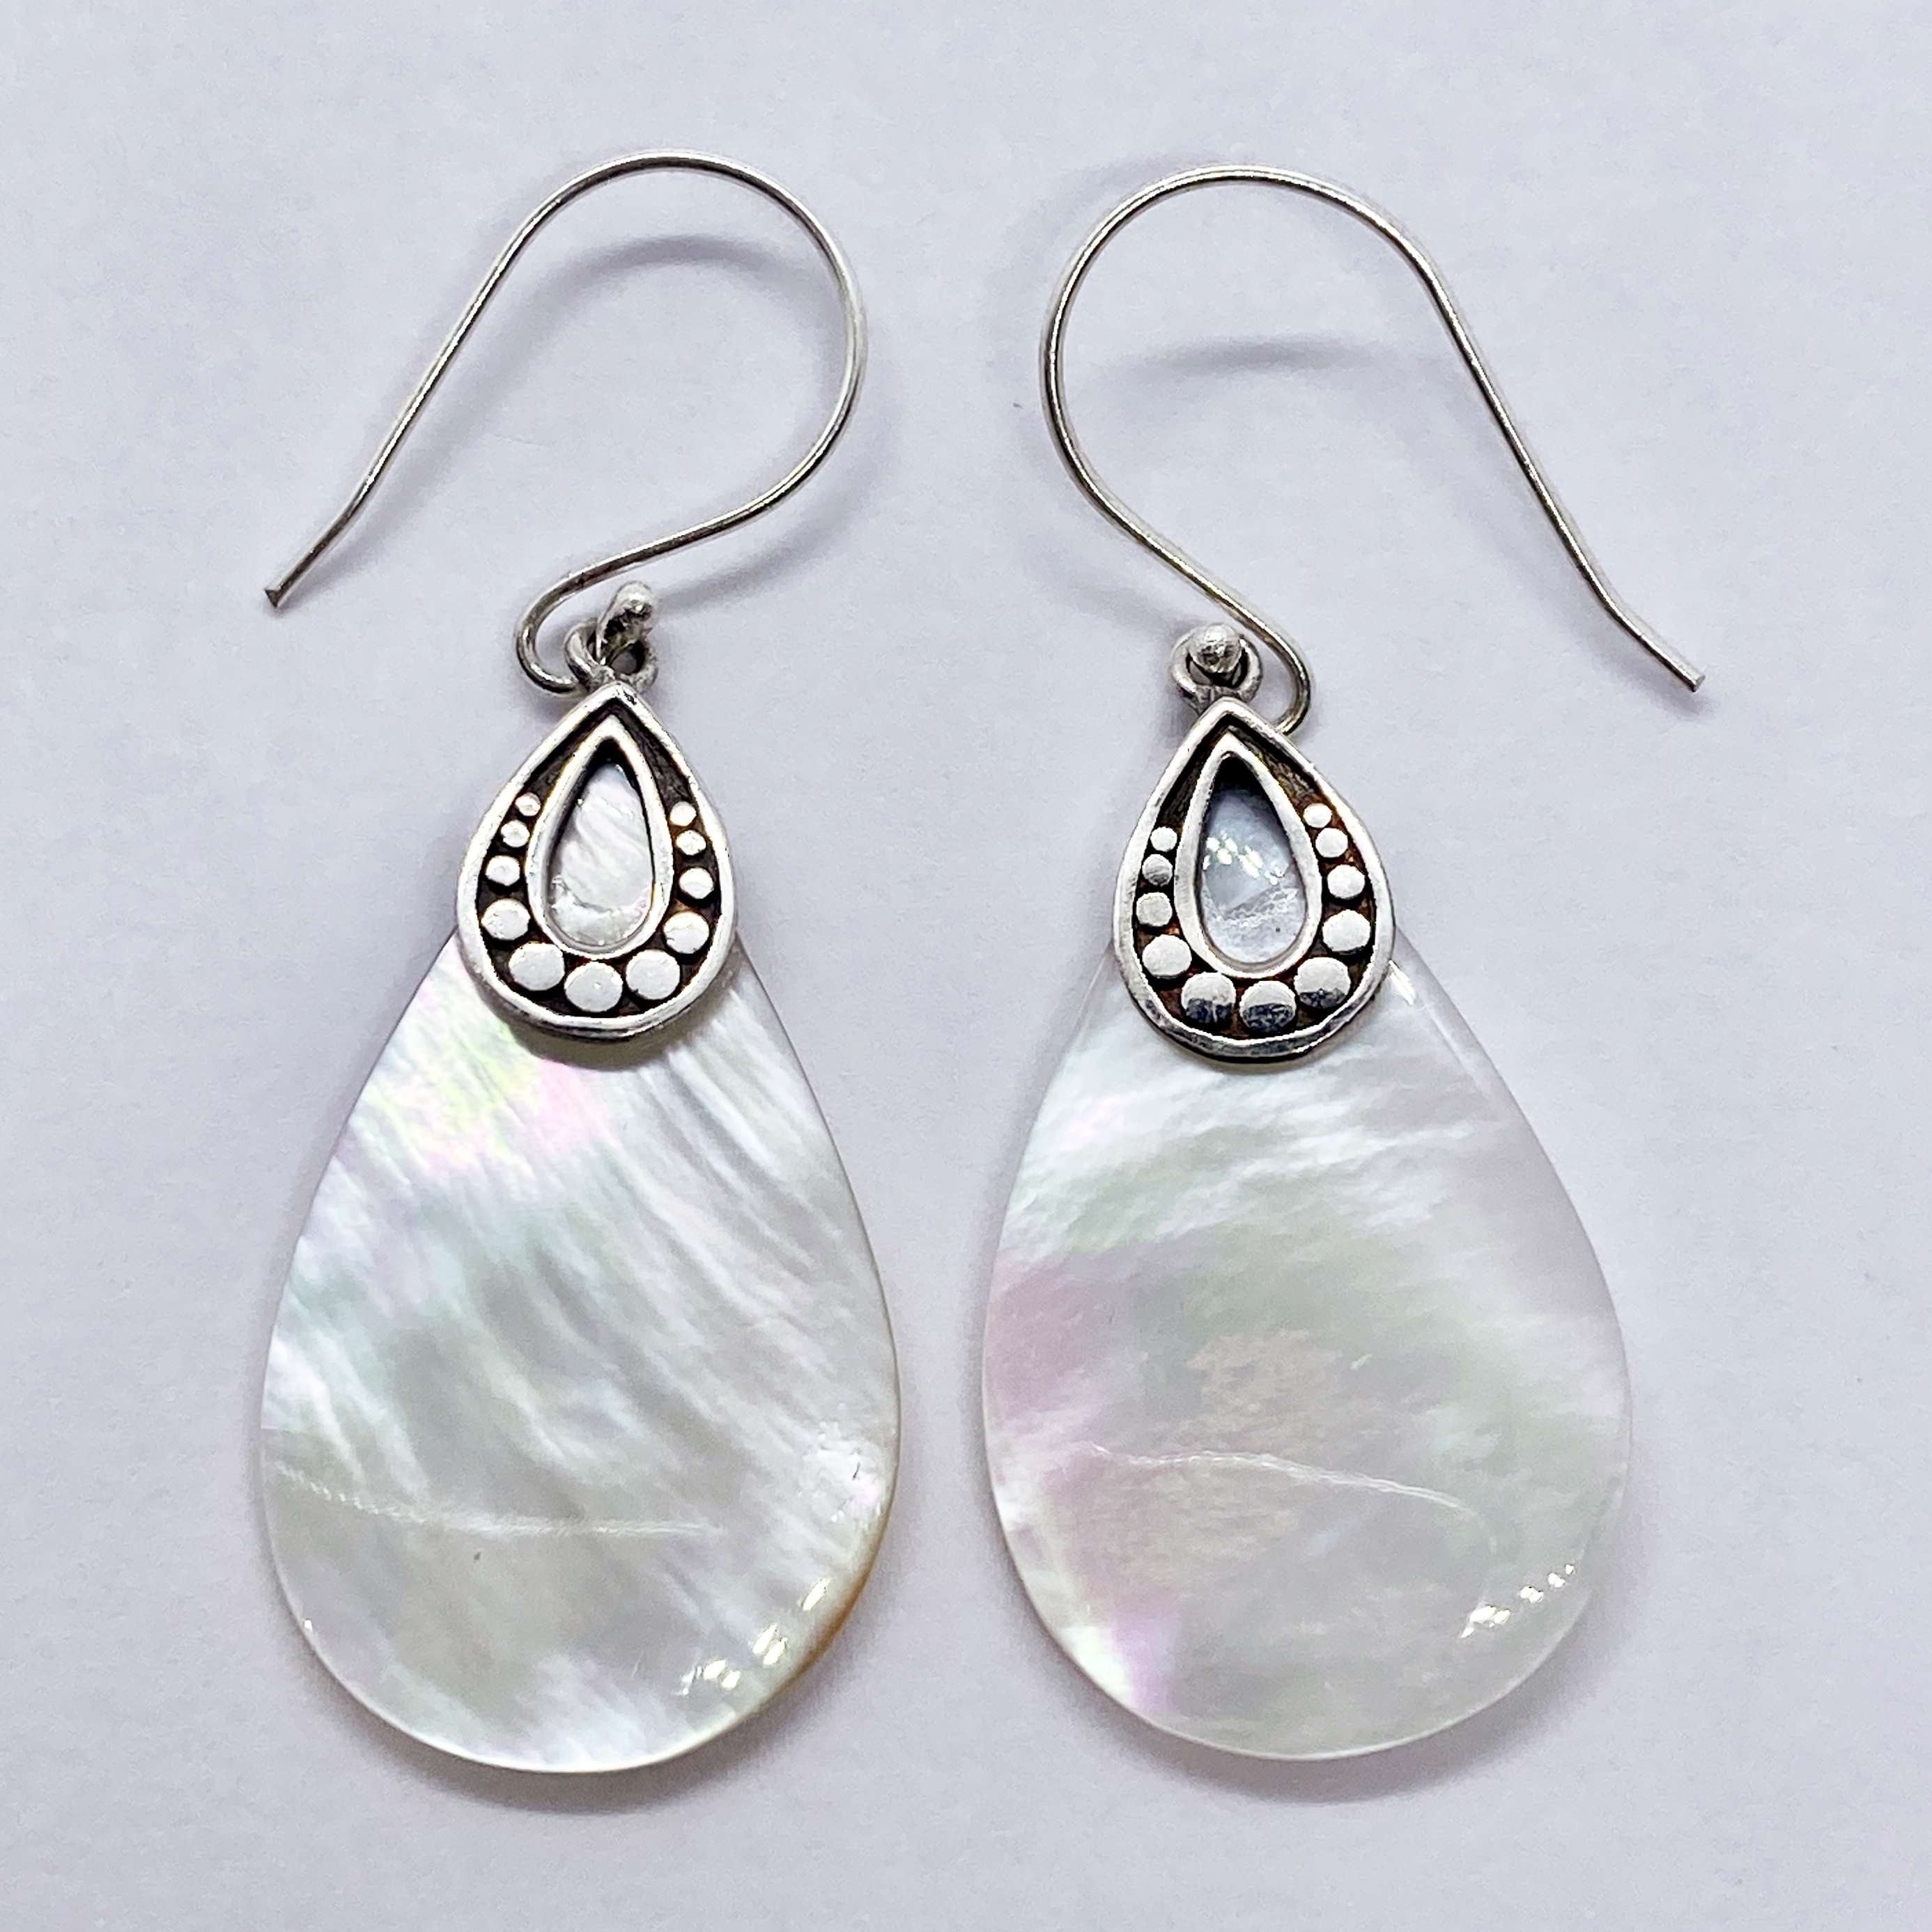 (HANDMADE 925 BALI SILVER ARMADILLO EARRINGS WITH MOTHER OF PEARL)